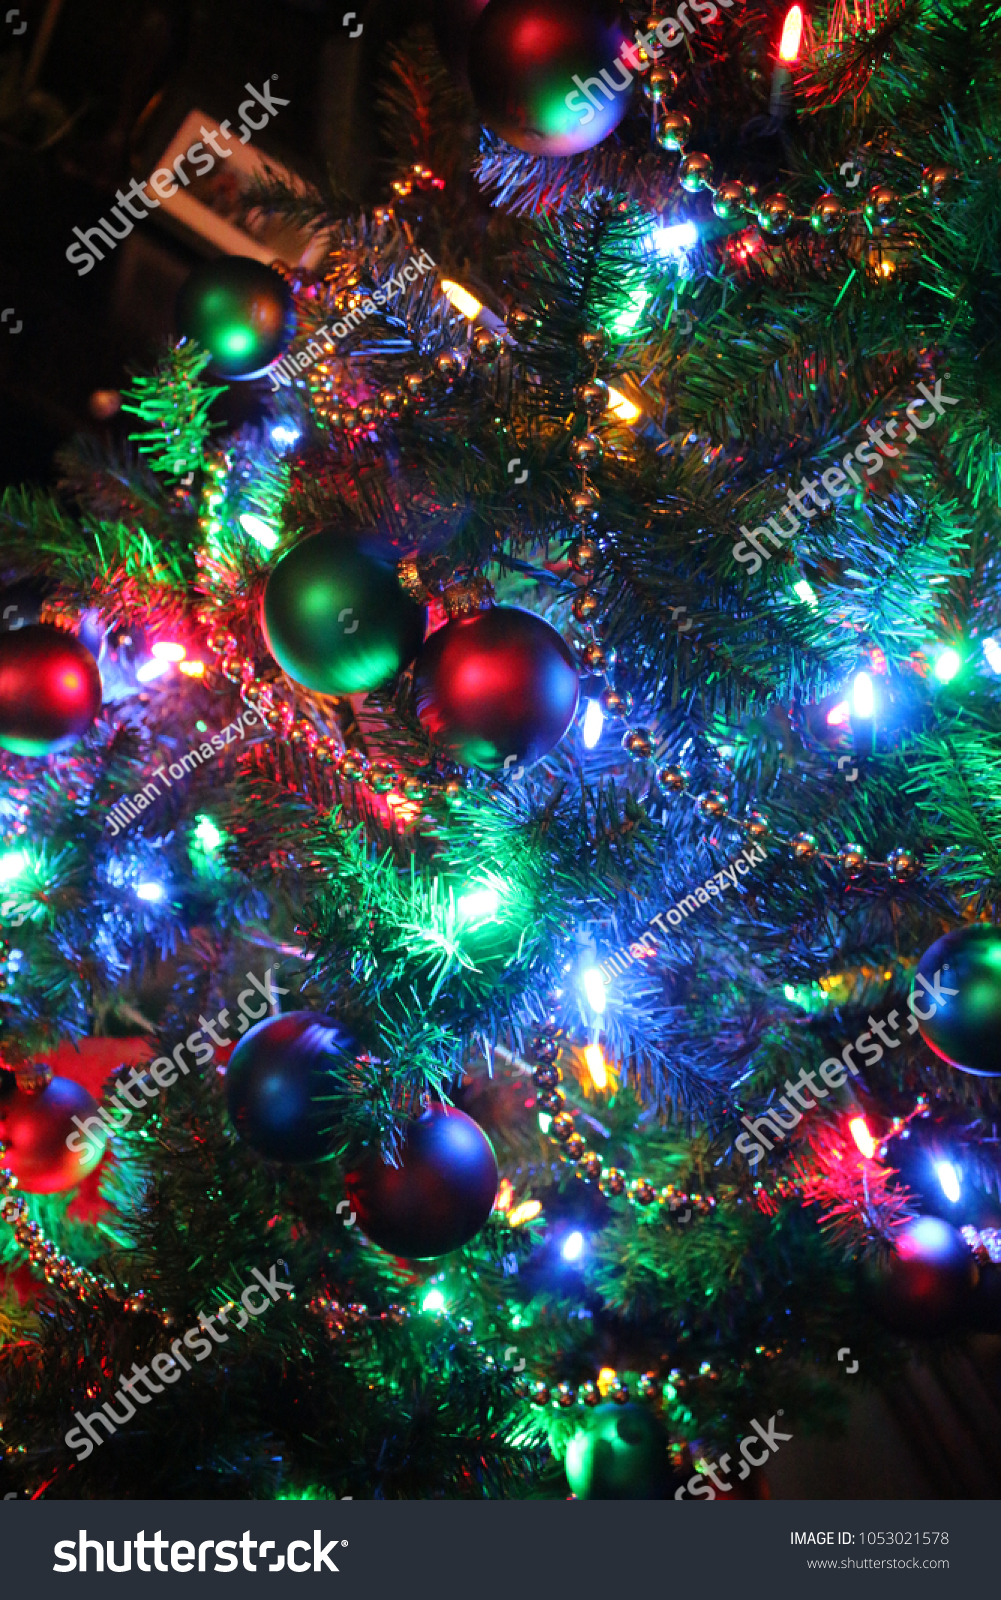 Christmas Tree Beautifully Decorated Multicolored Lights Stock Photo Edit Now 1053021578